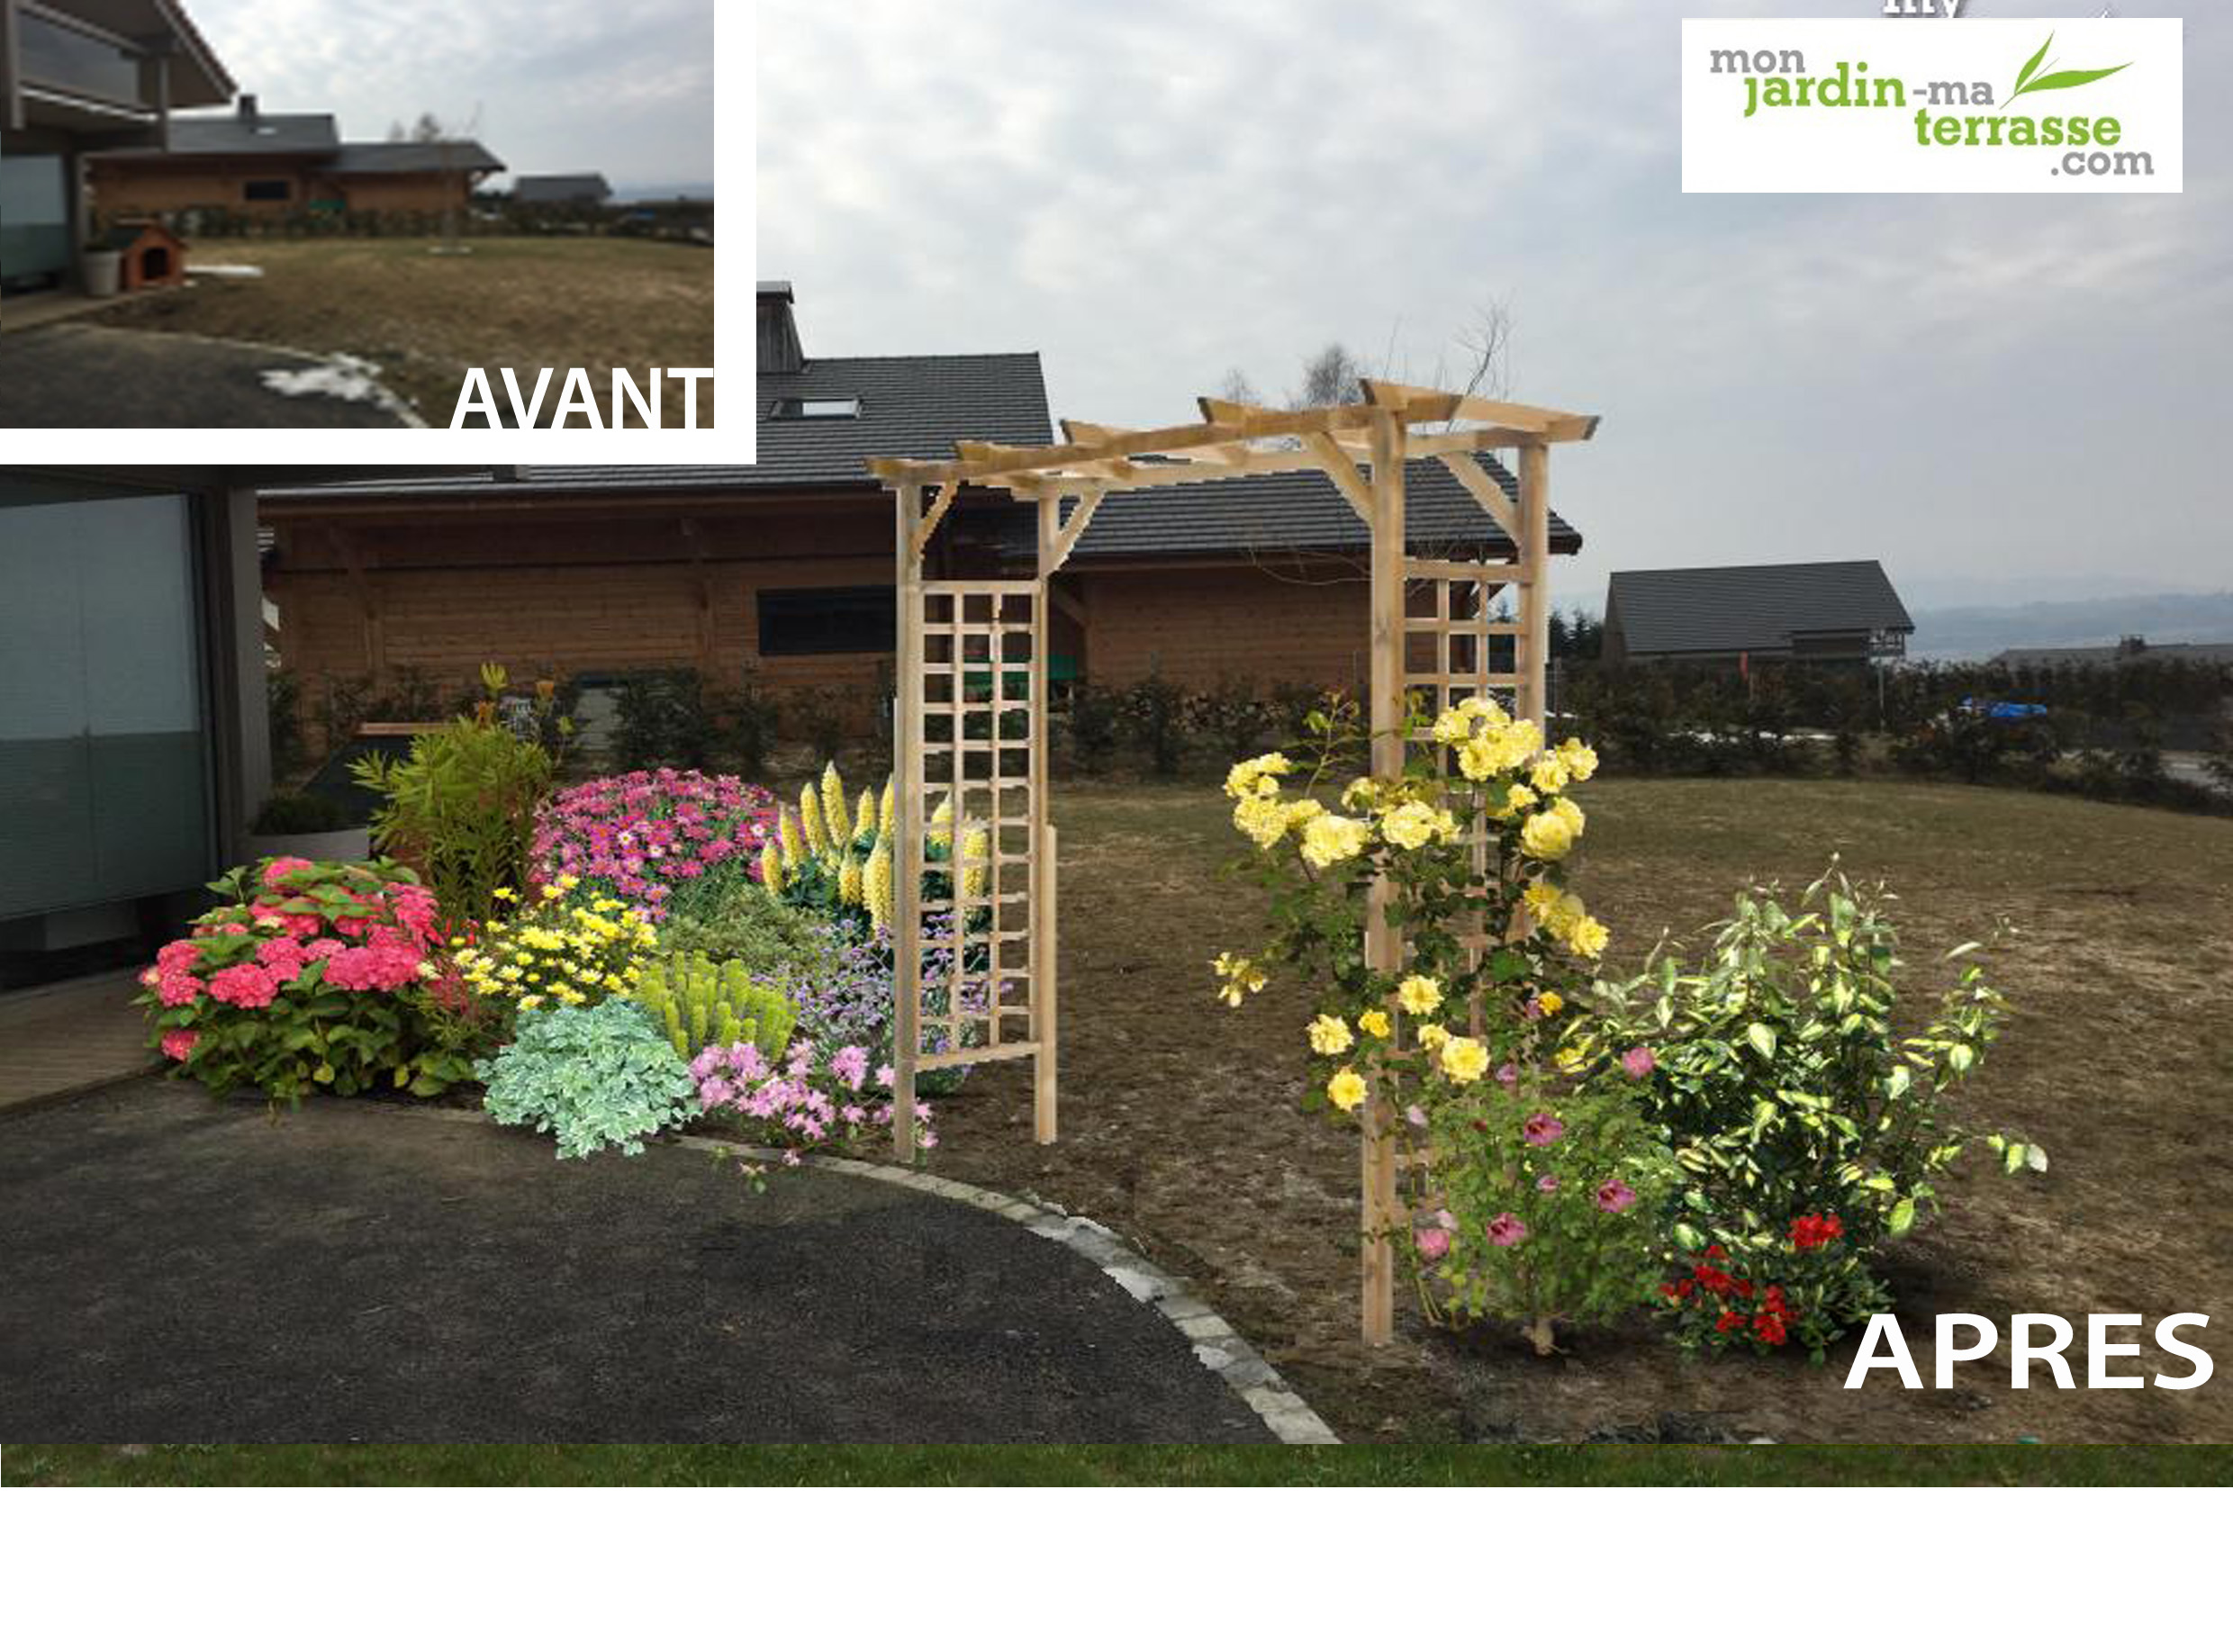 Amenager Son Jardin En Normandie Of Am Nager Son Entr E De Jardin Monjardin